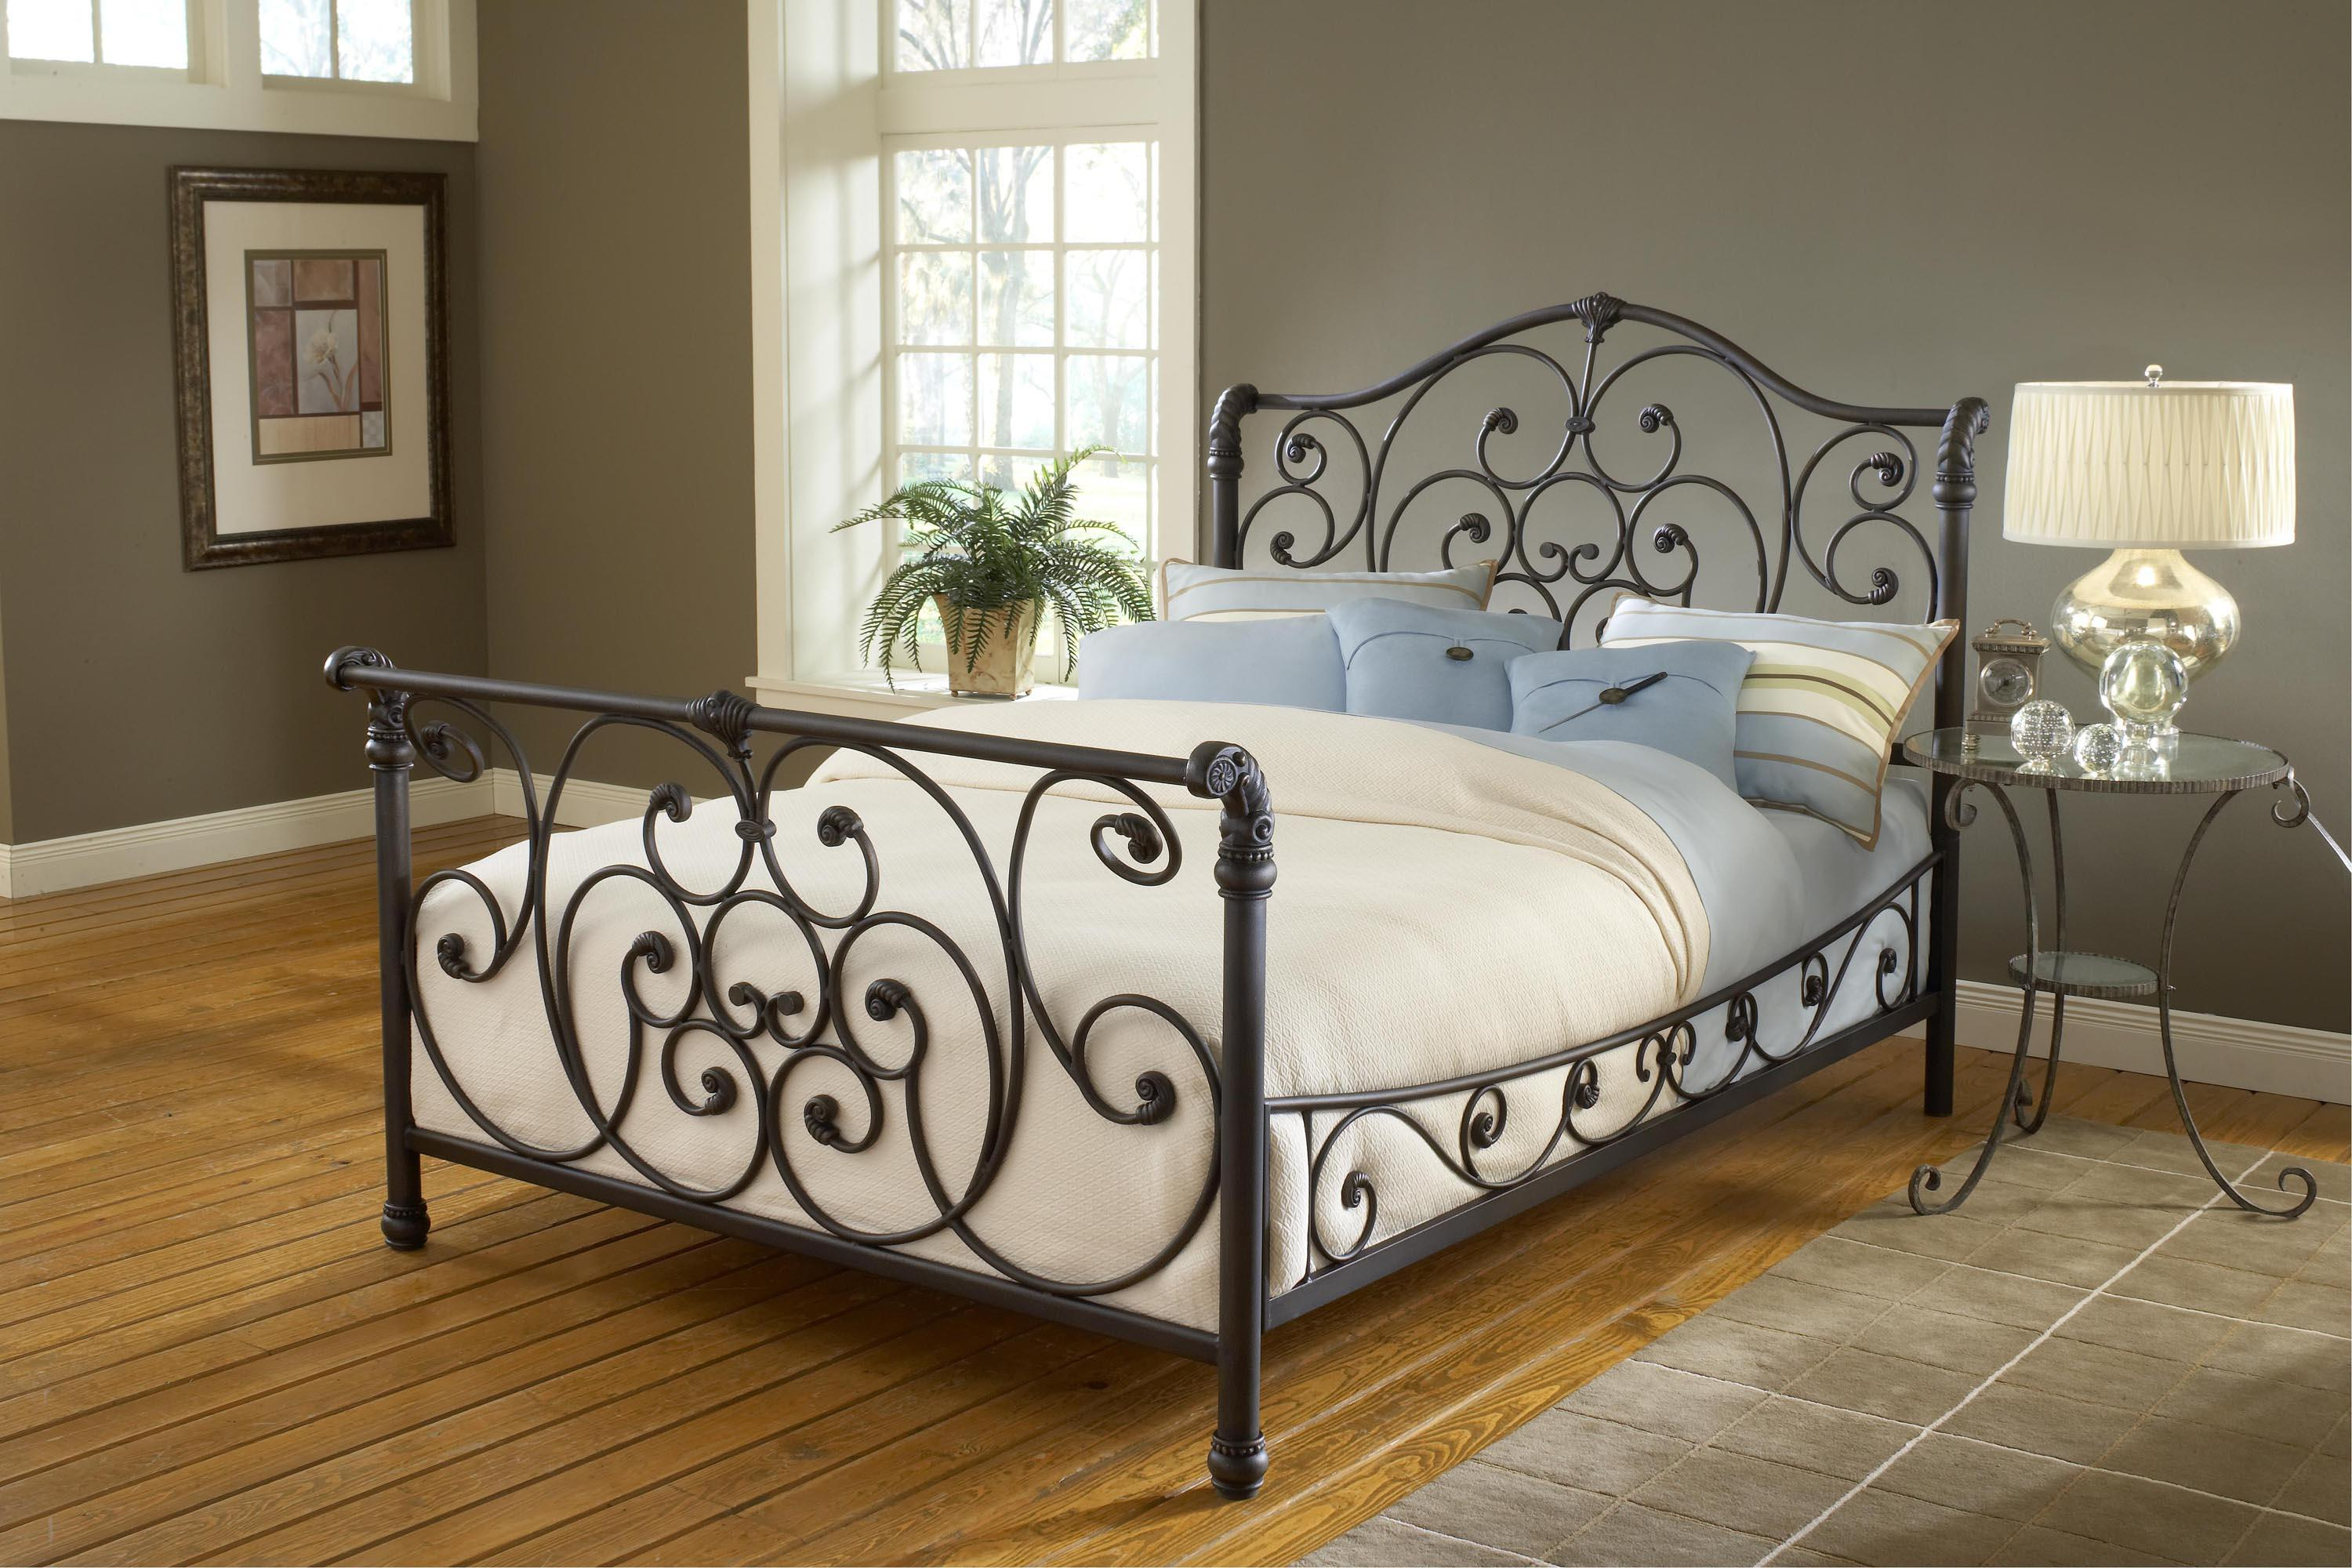 Hillsdale Metal Beds Mandalay King Bed Set - Item Number: 1579BKR